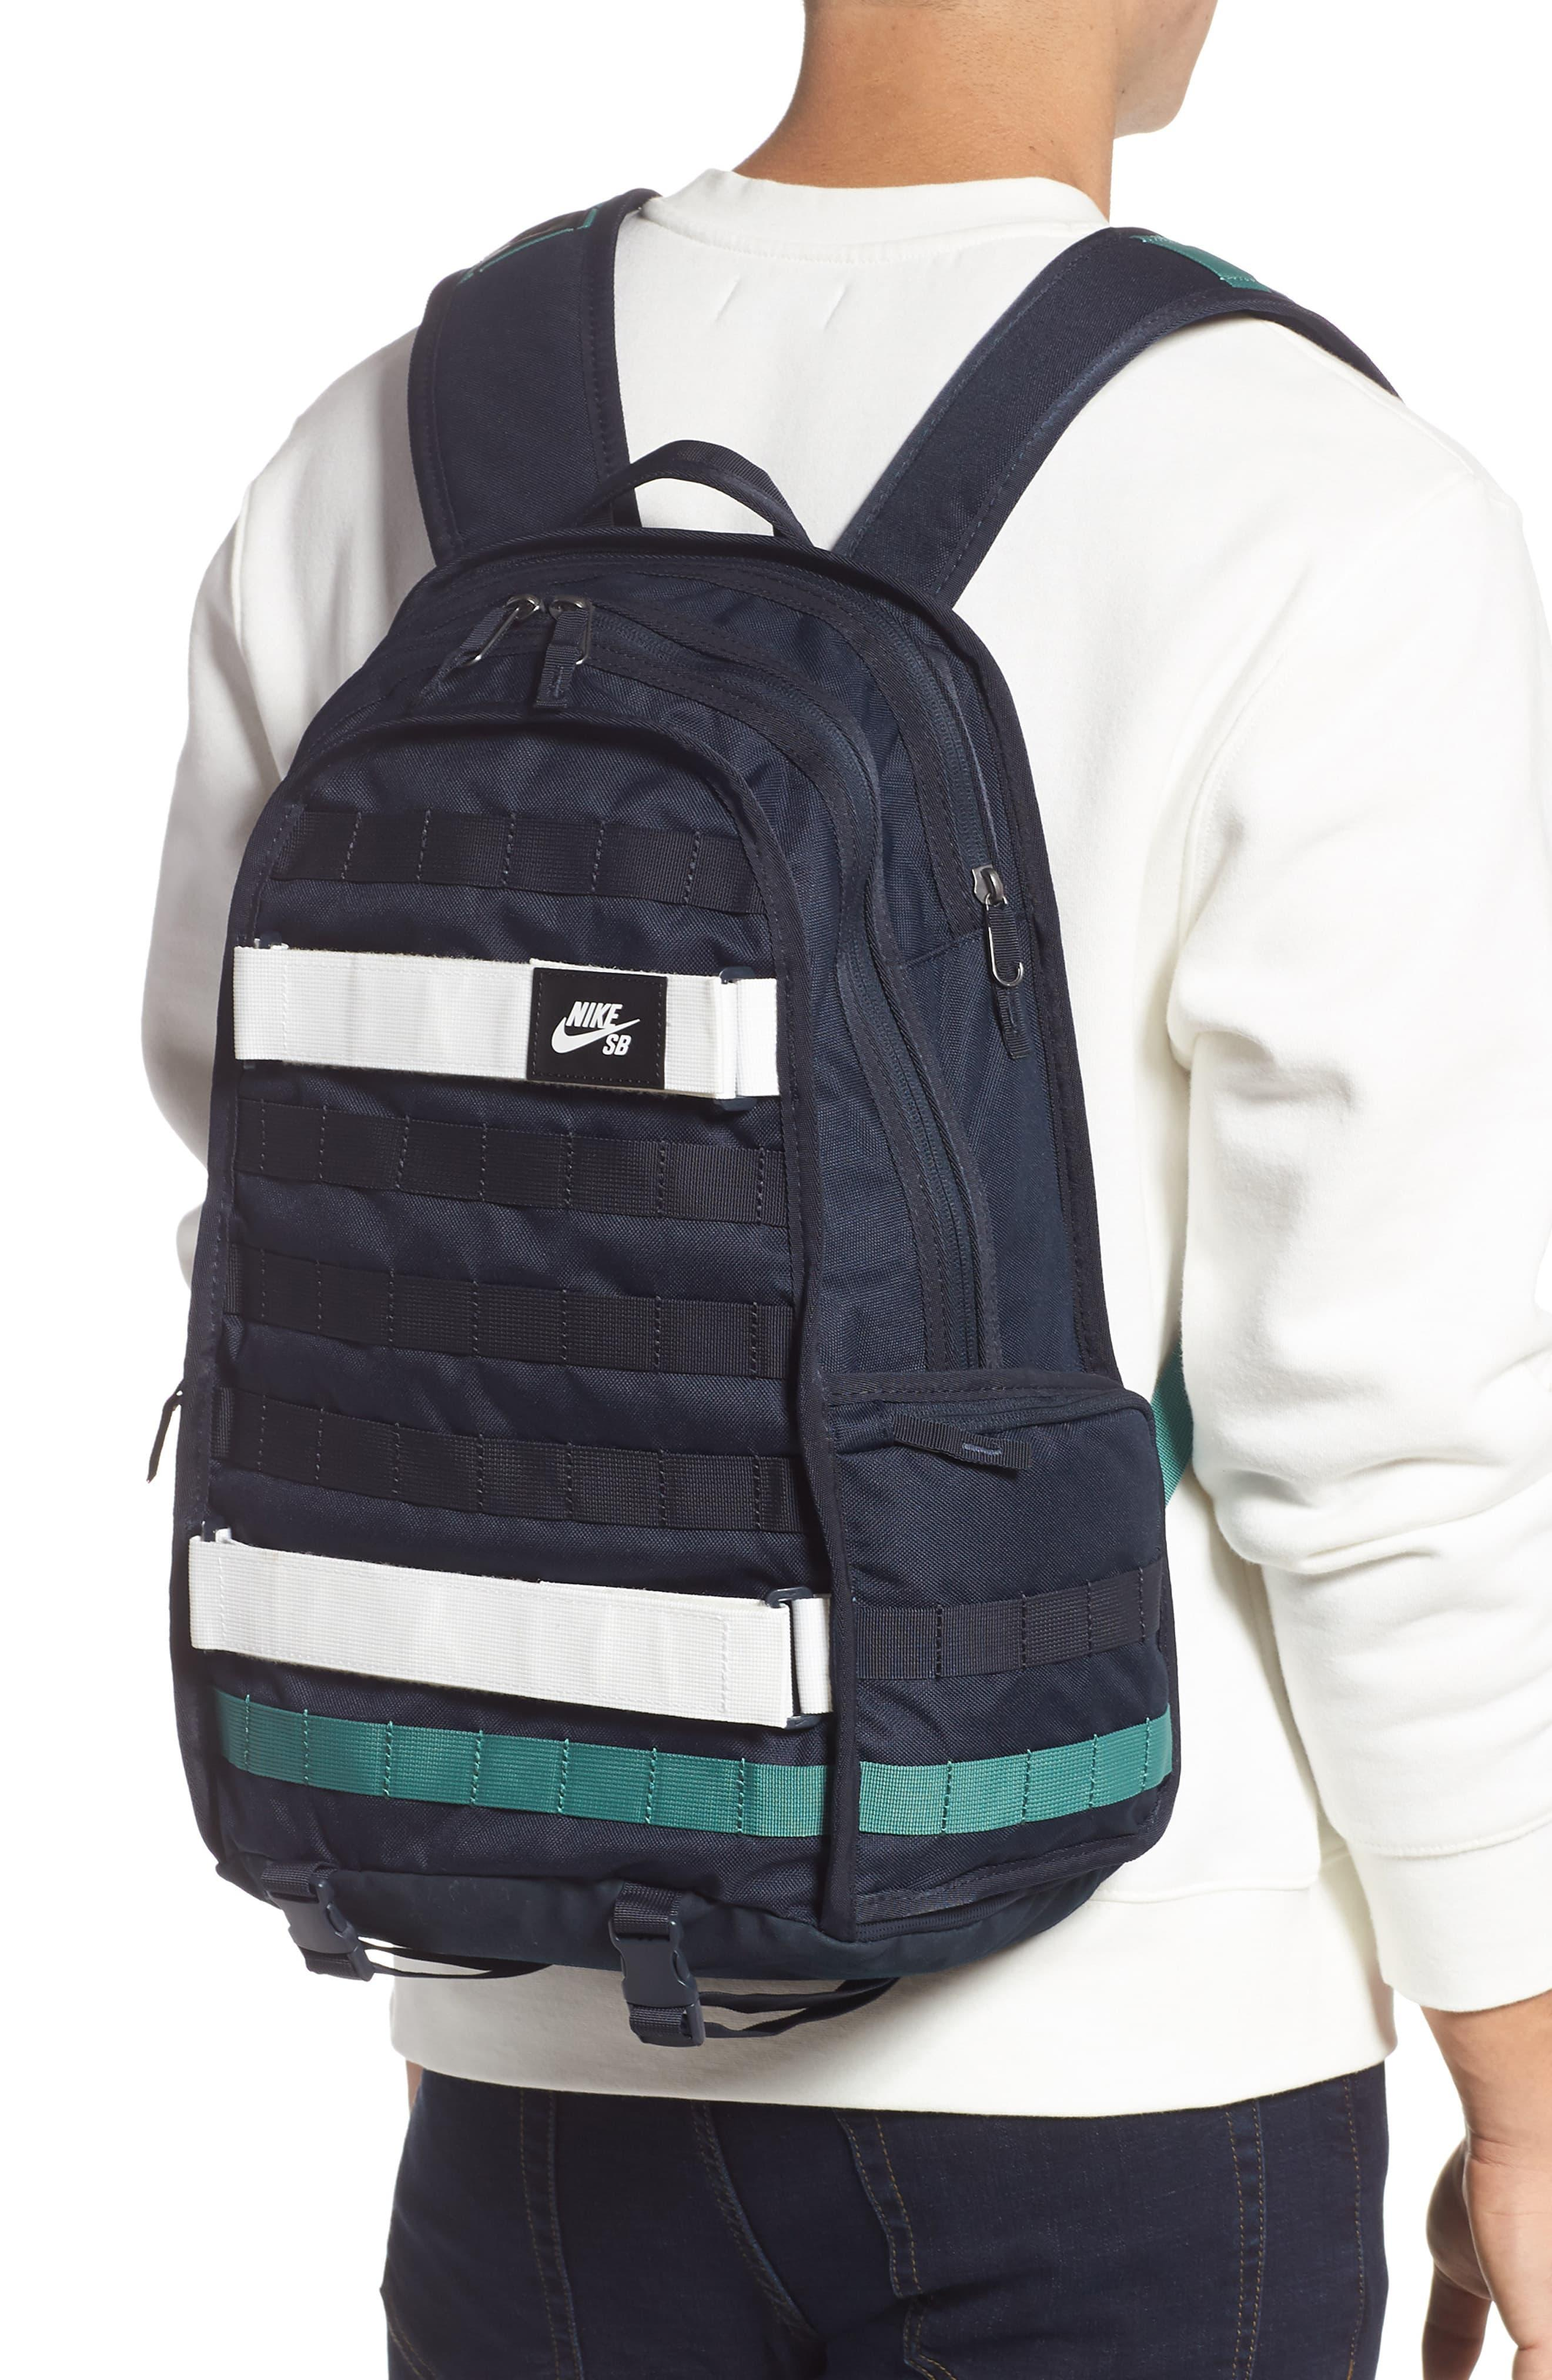 inquilino muy agradable Oscurecer  Nike Sb Rpm Skateboarding Backpack in Navy (Blue) for Men - Save 45% - Lyst